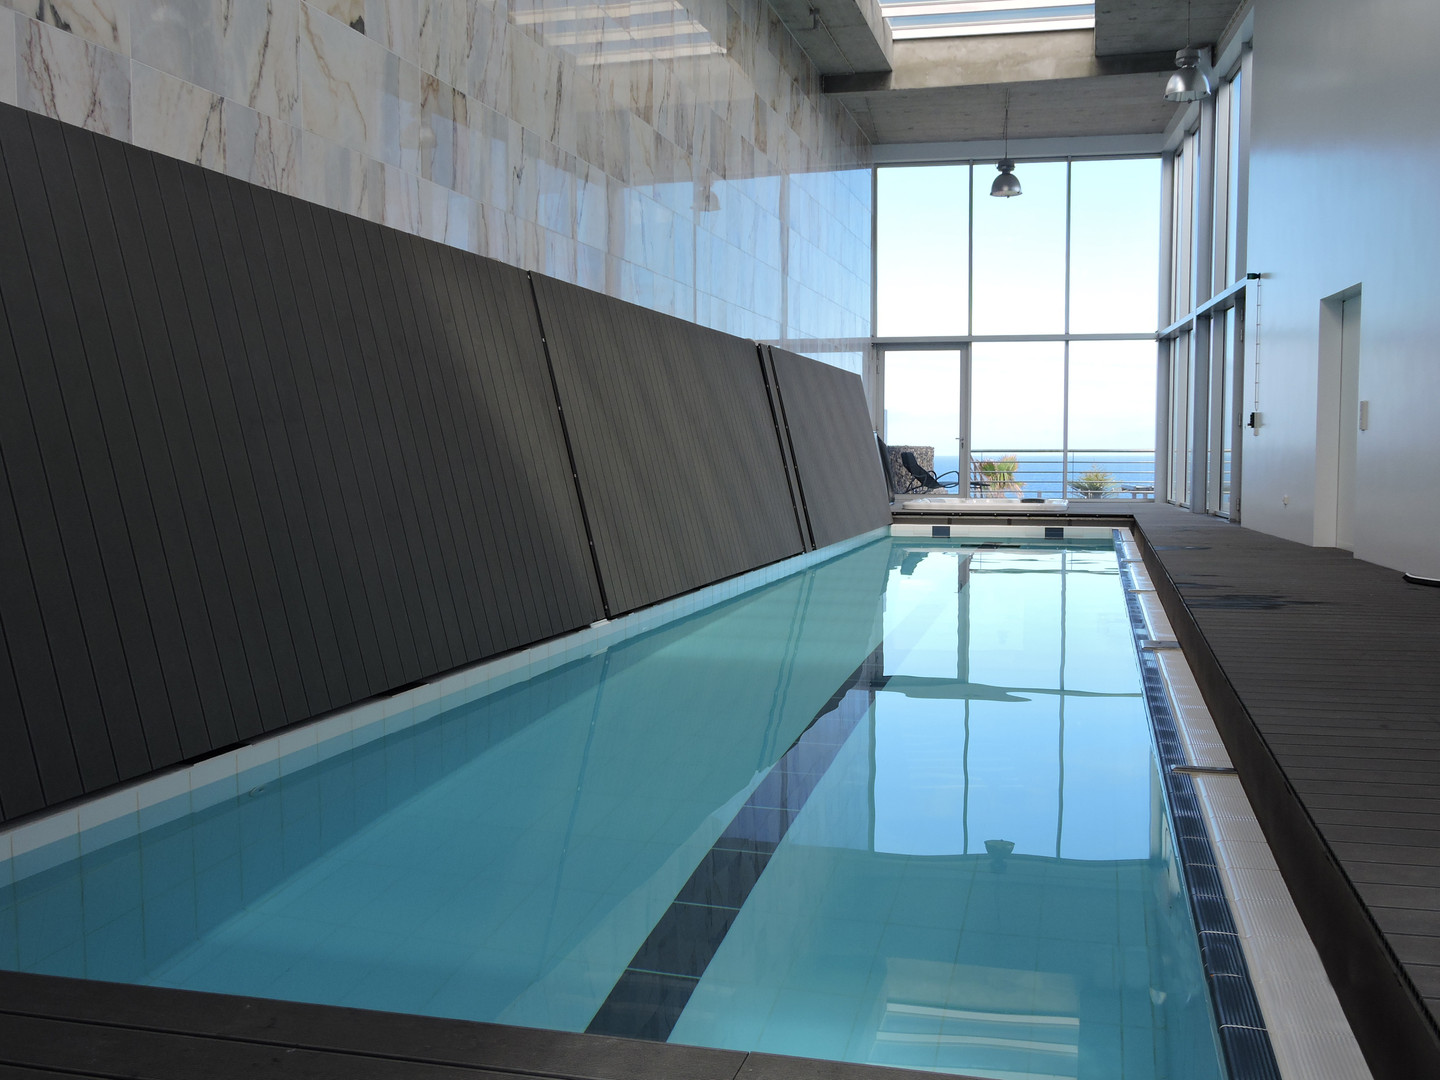 Vertical Pool Cover - ABER MOVE (8).JPG